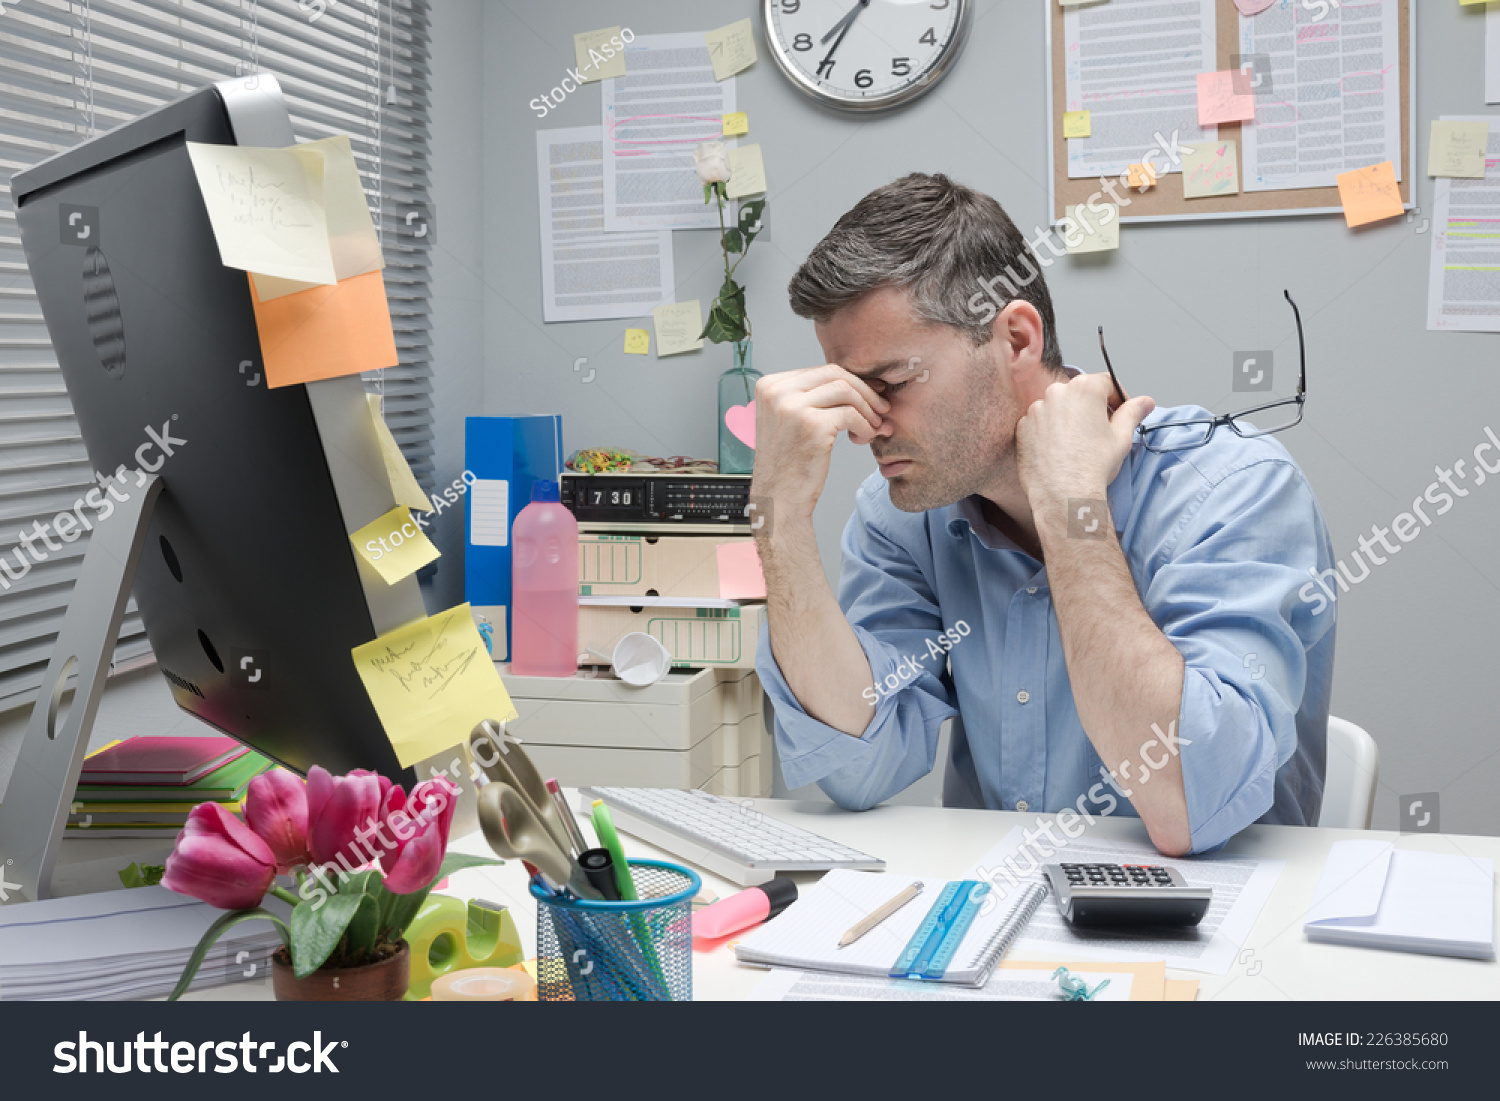 Frustrated office worker on the phone holding stock photo image - Depressed Bored Office Worker At His Desk Holding Glasses